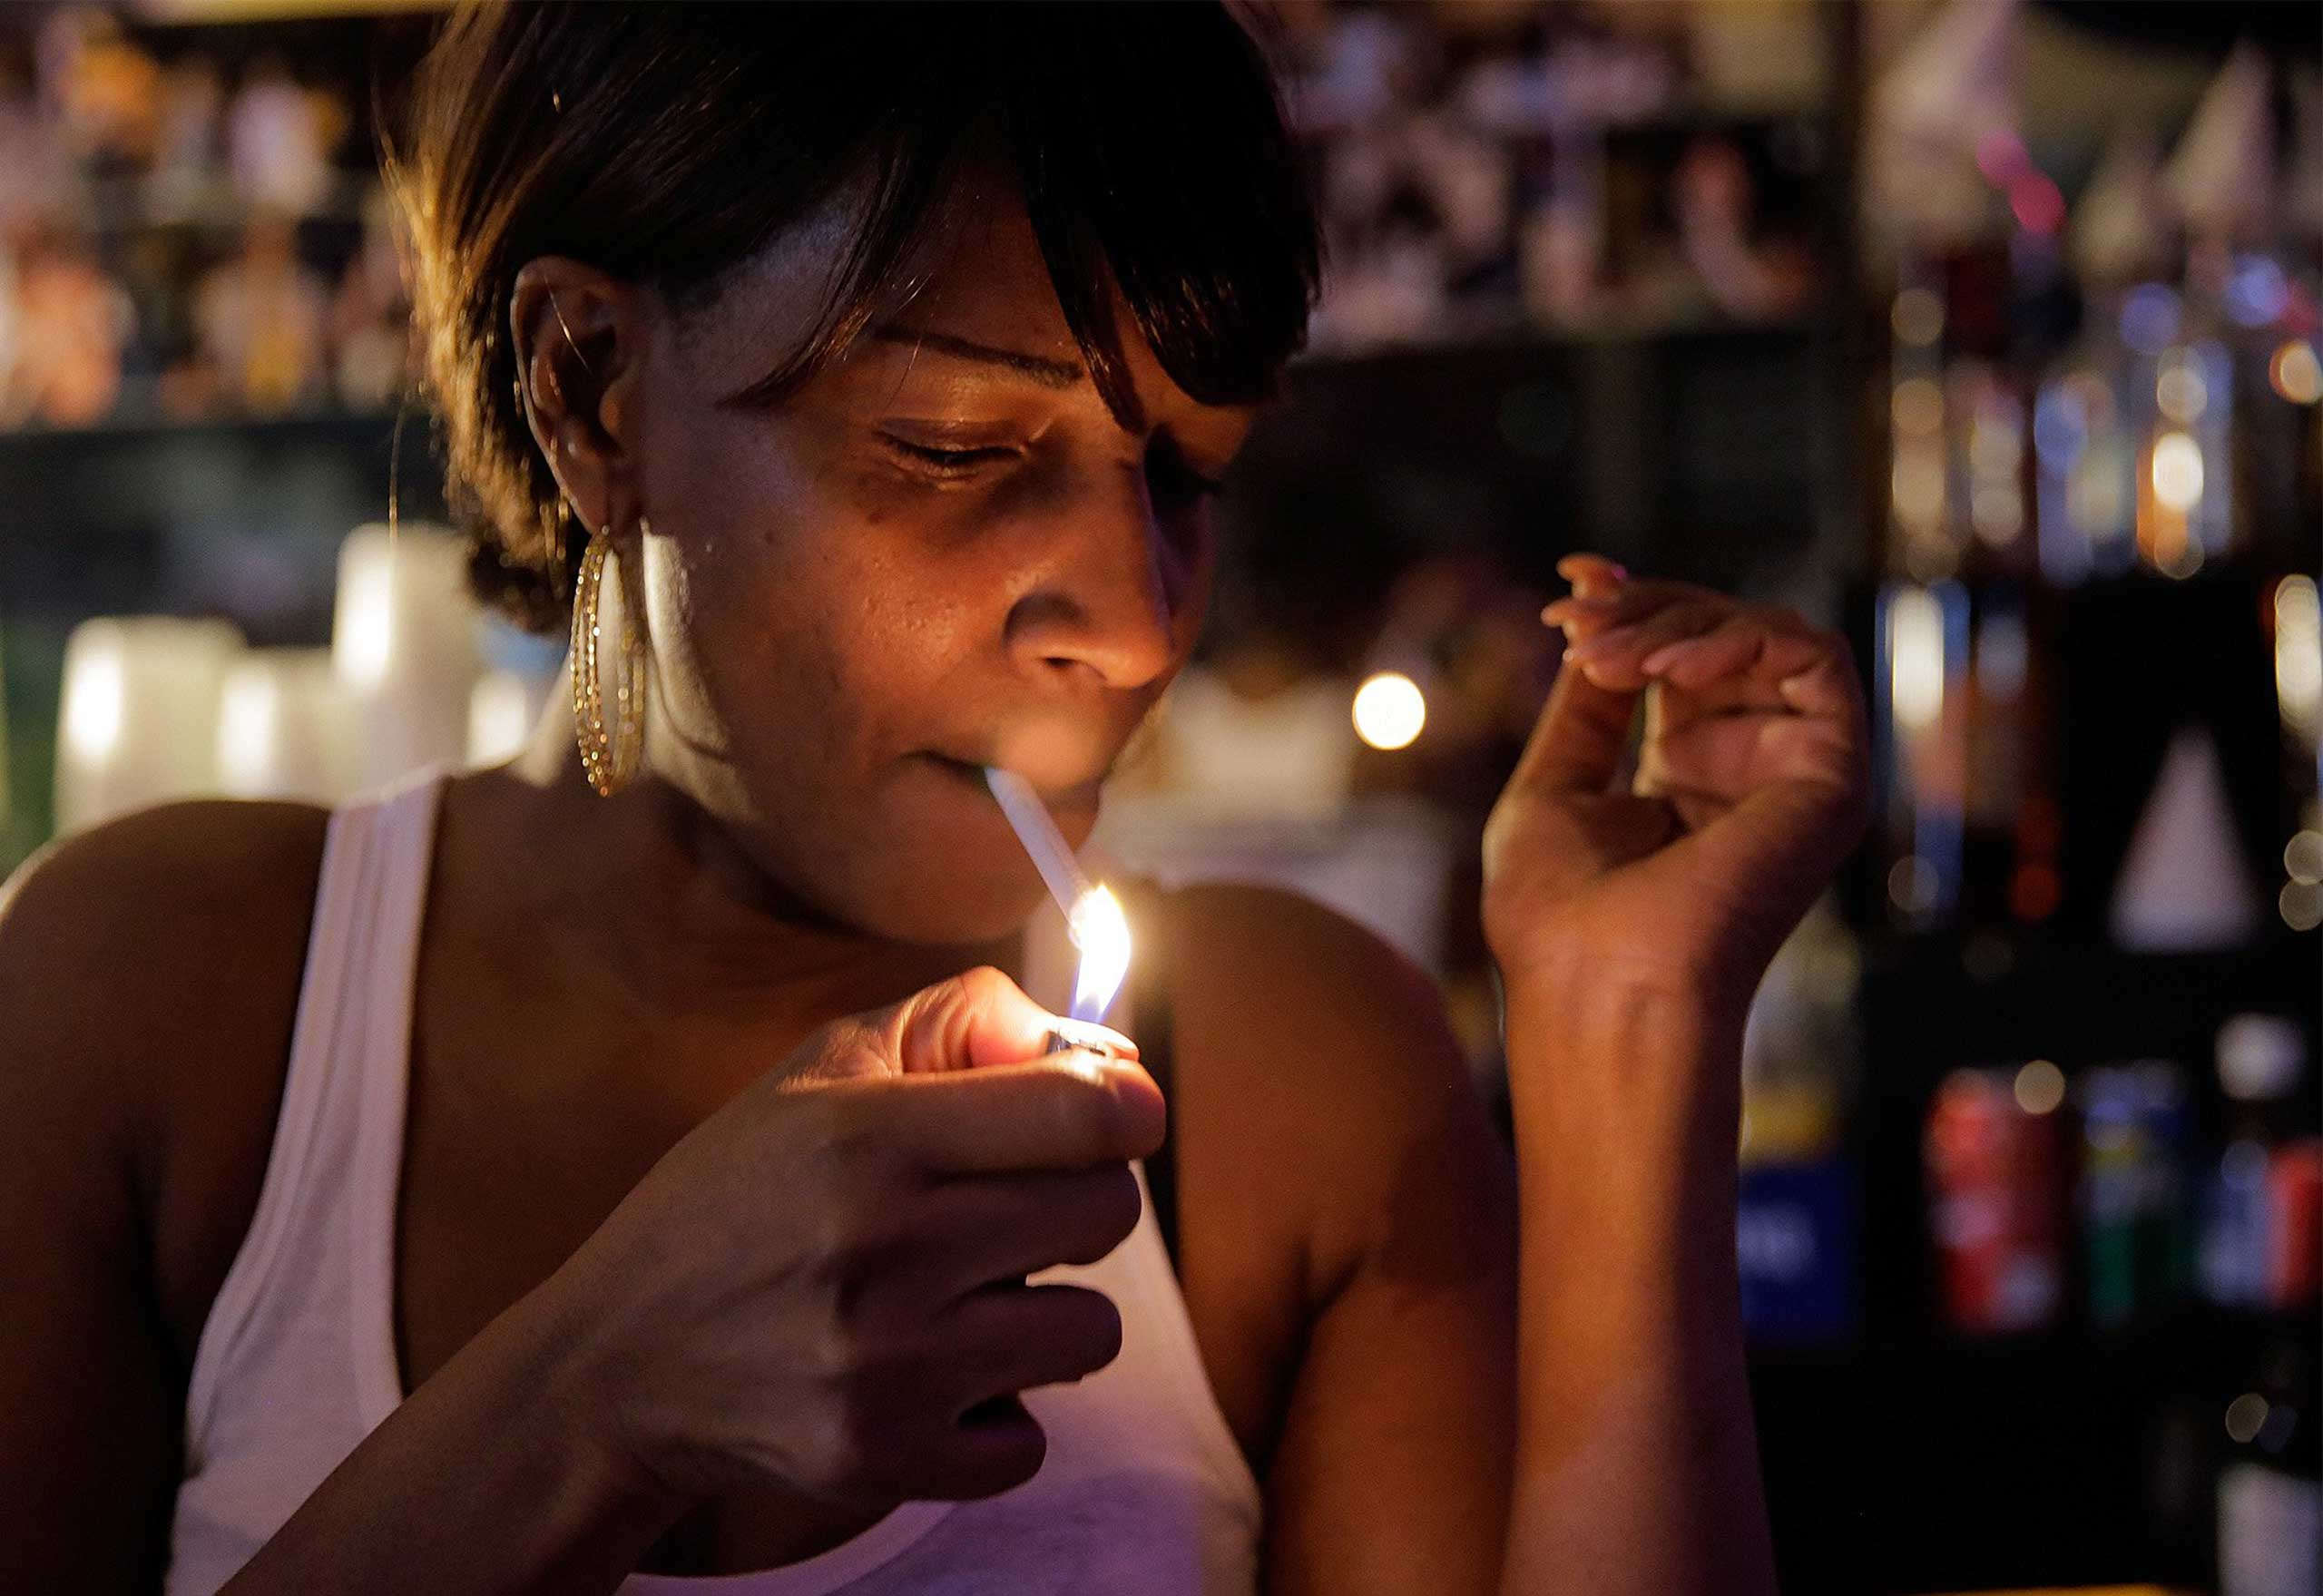 Judy Hill, owner of the Ooh Poo Pah Doo Bar in New Orleans, enjoys a smoke just days before the new city smoking ordinance on April 17, 2015.